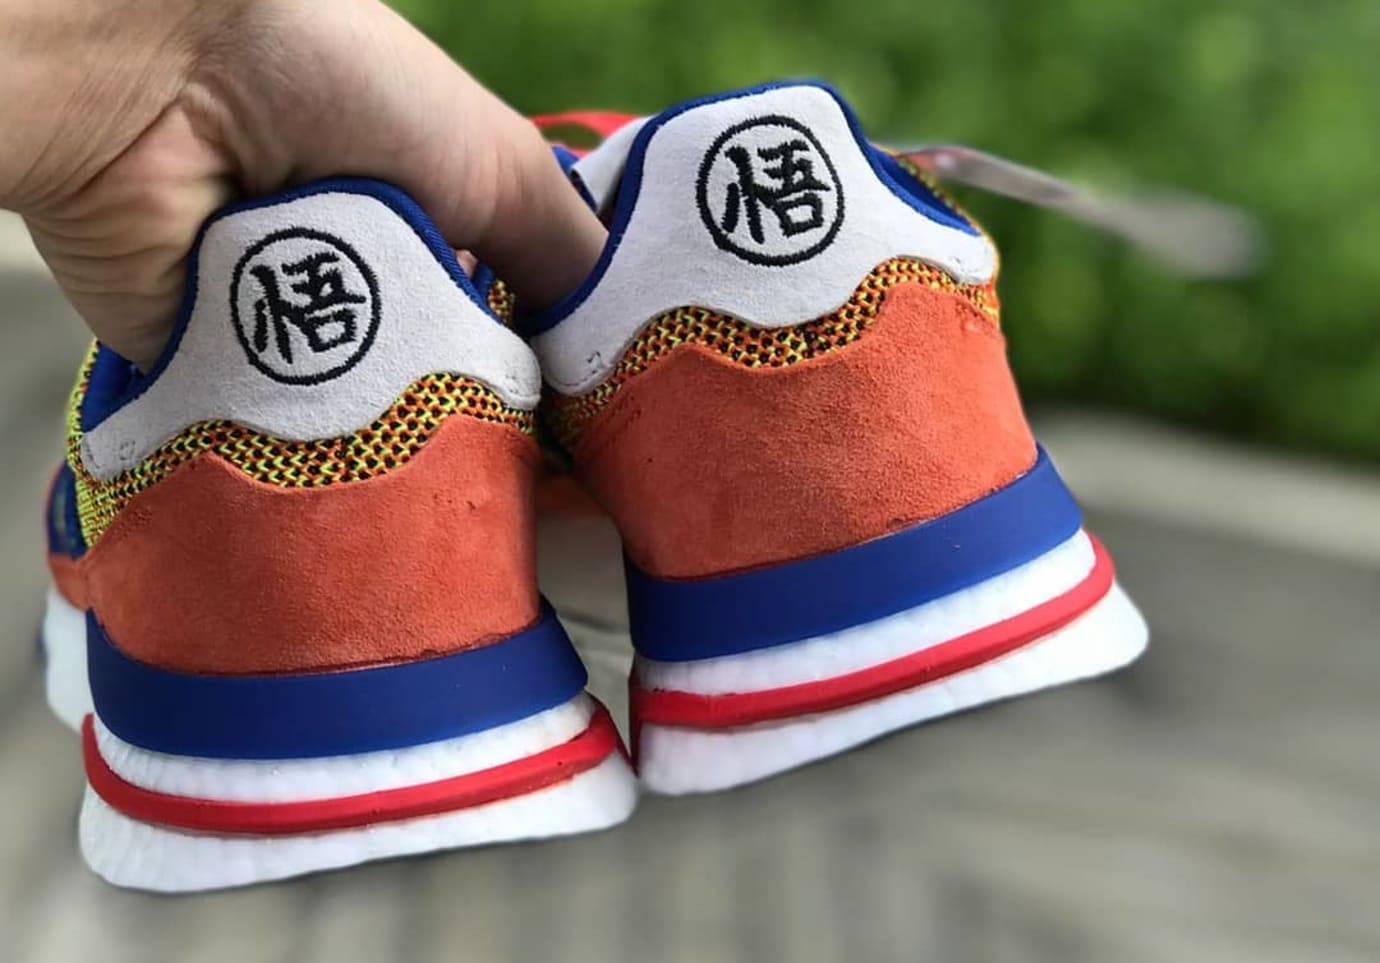 premium selection fe613 68d79 Dragon Ball Z x Adidas ZX500 RM 'Son Goku' First Look | Sole ...